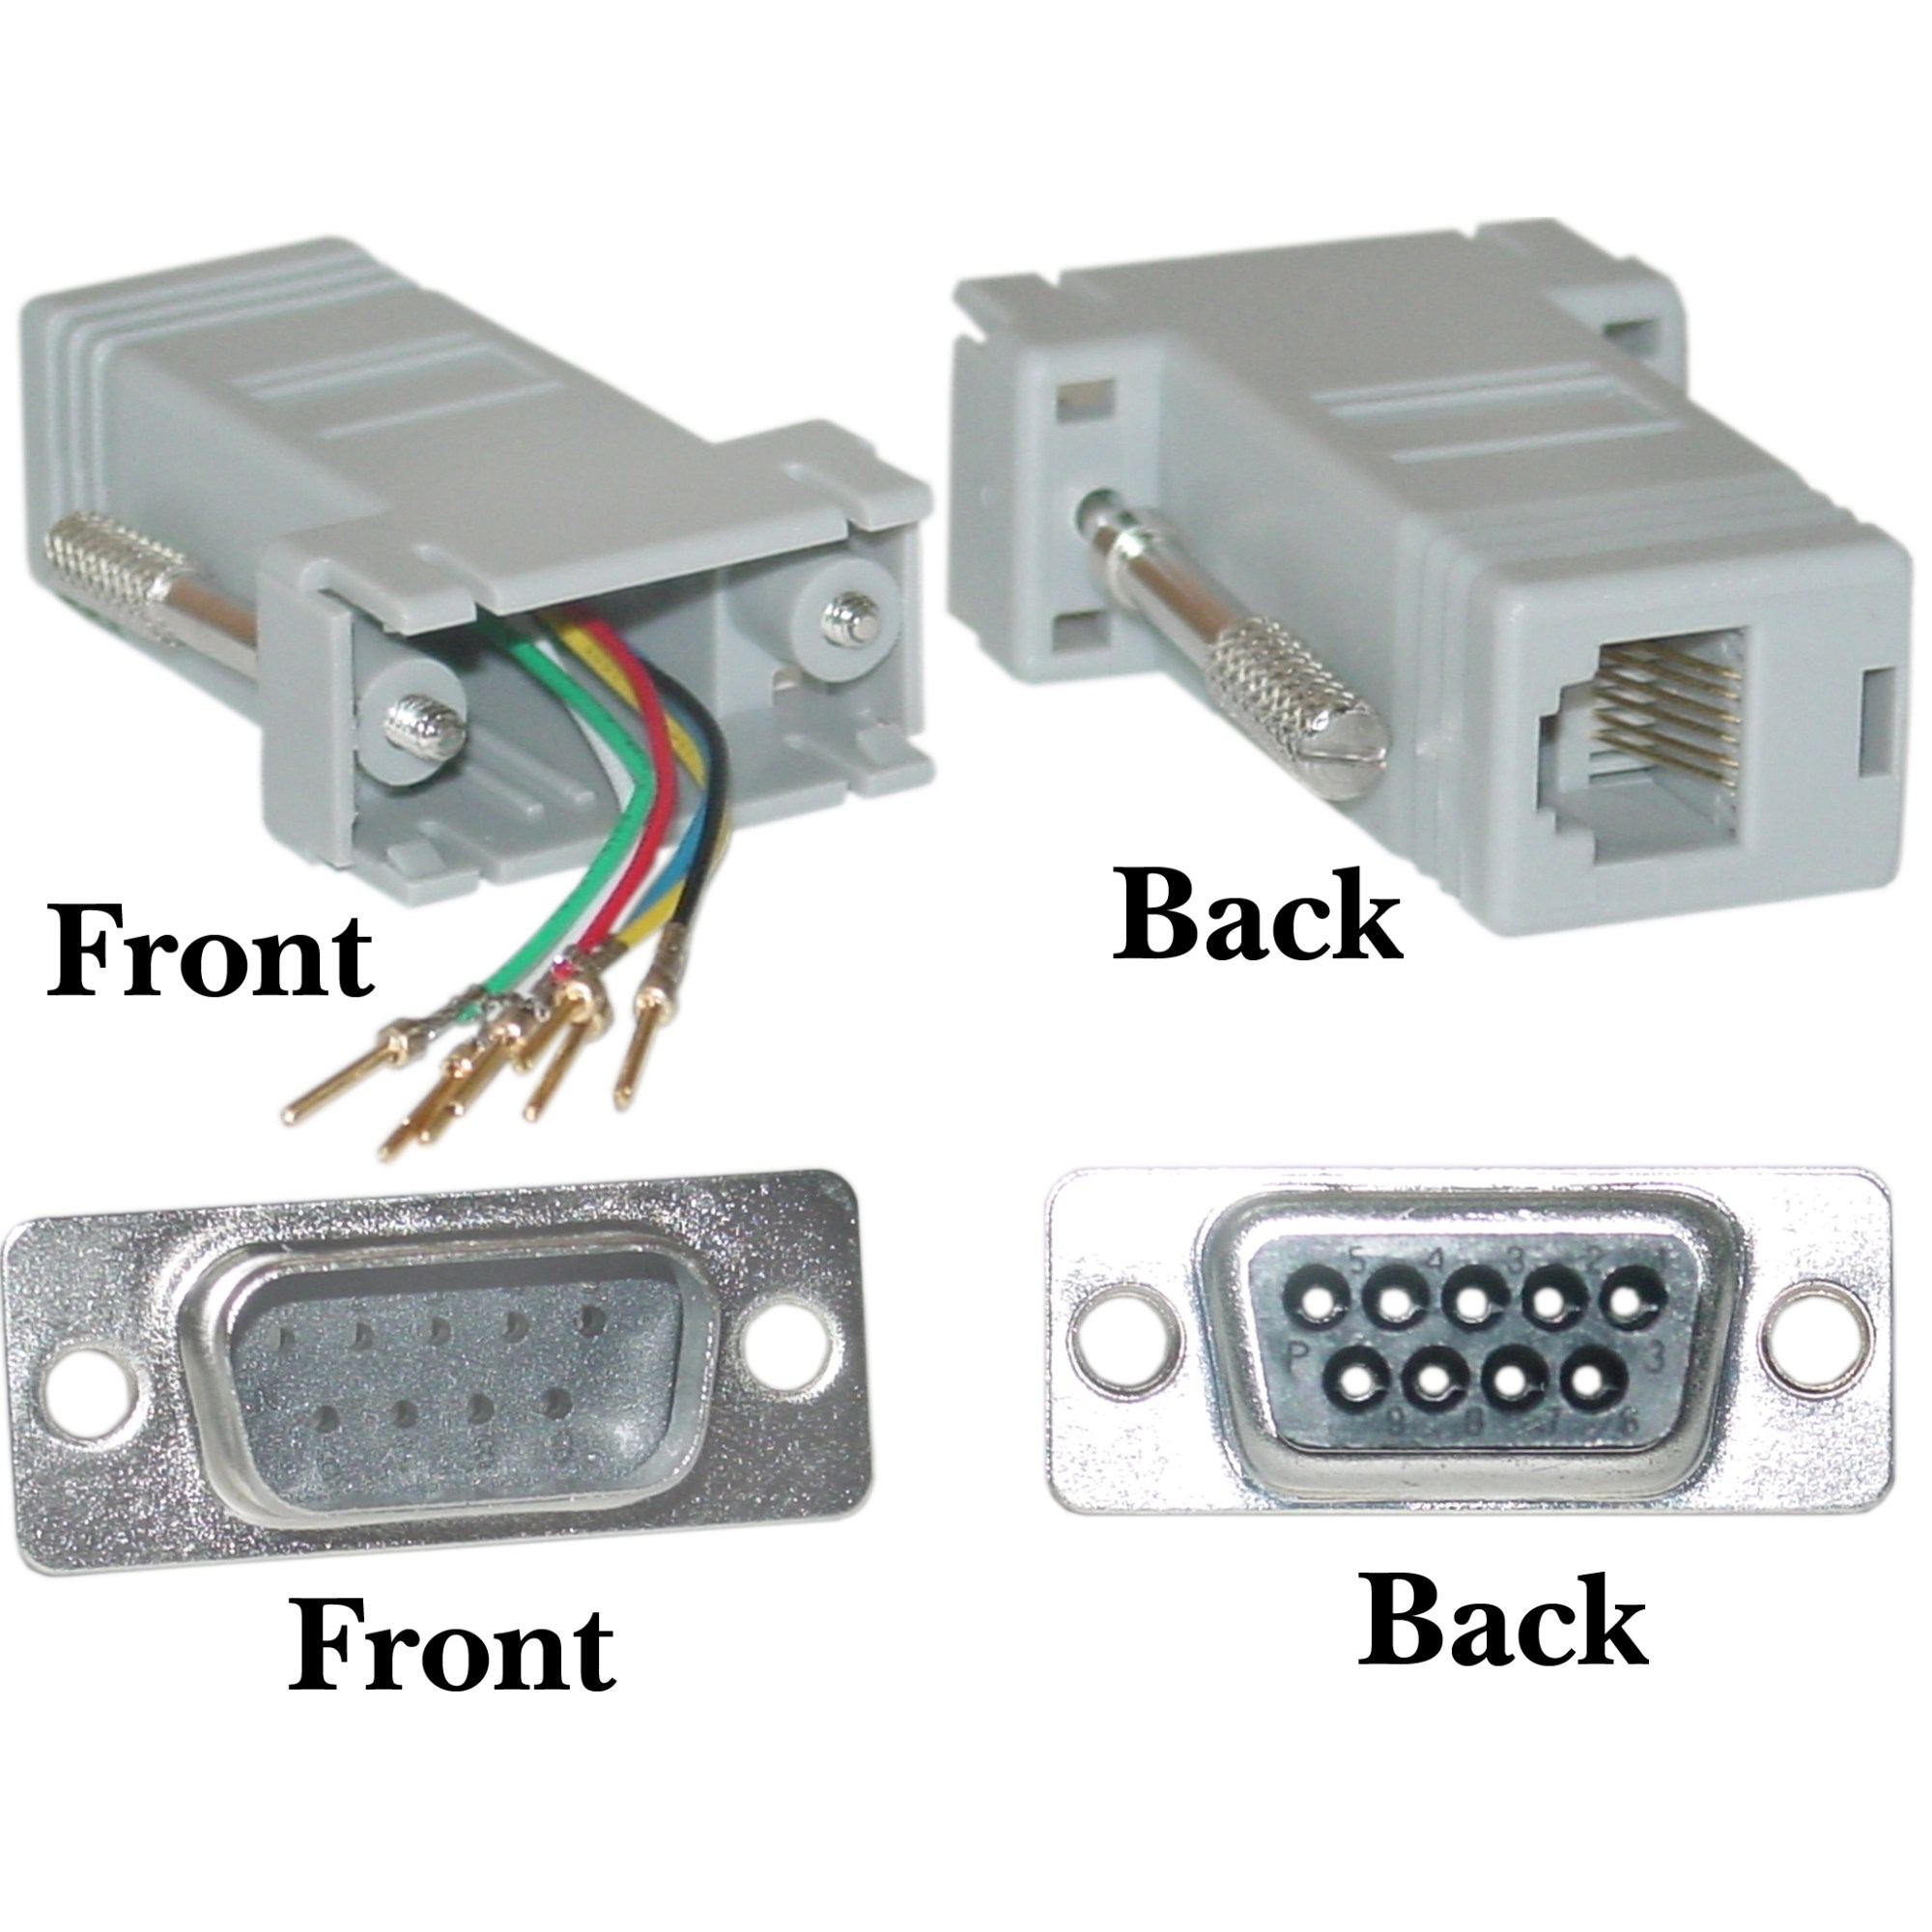 hight resolution of modular adapter db9 male to rj12 gray db9 to db25 rj12 to db9 female wiring